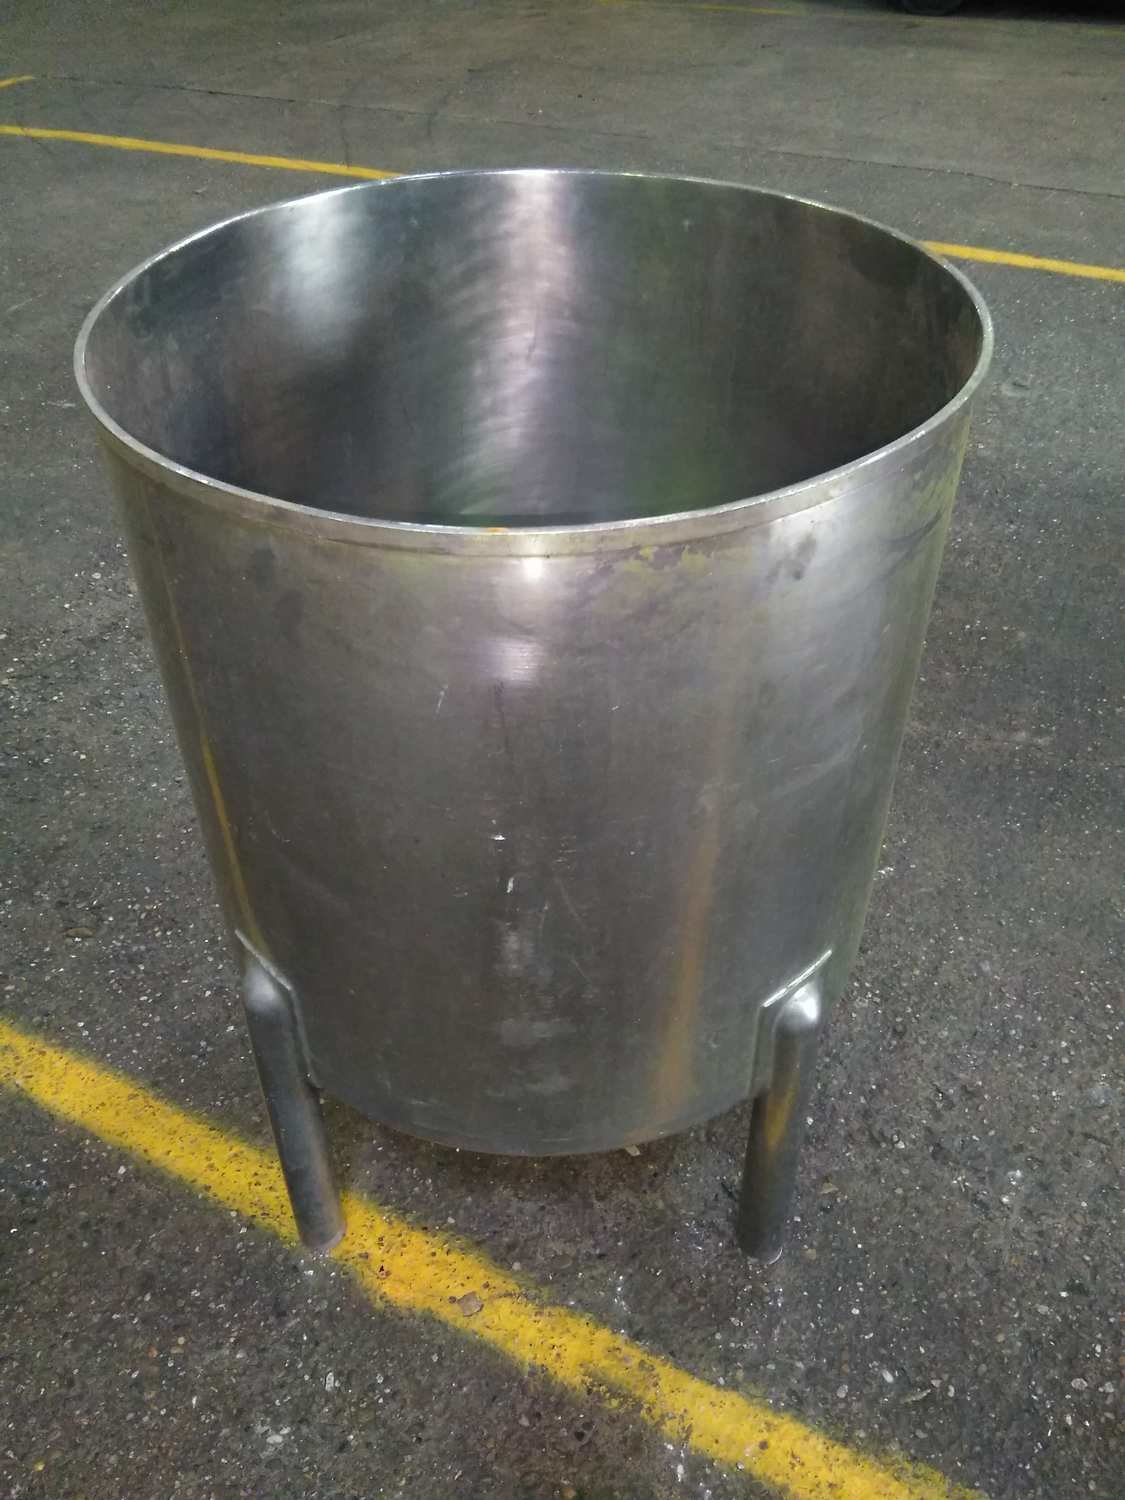 227 Litre Tank - Vertical, Cylindrical Open Top Vessel